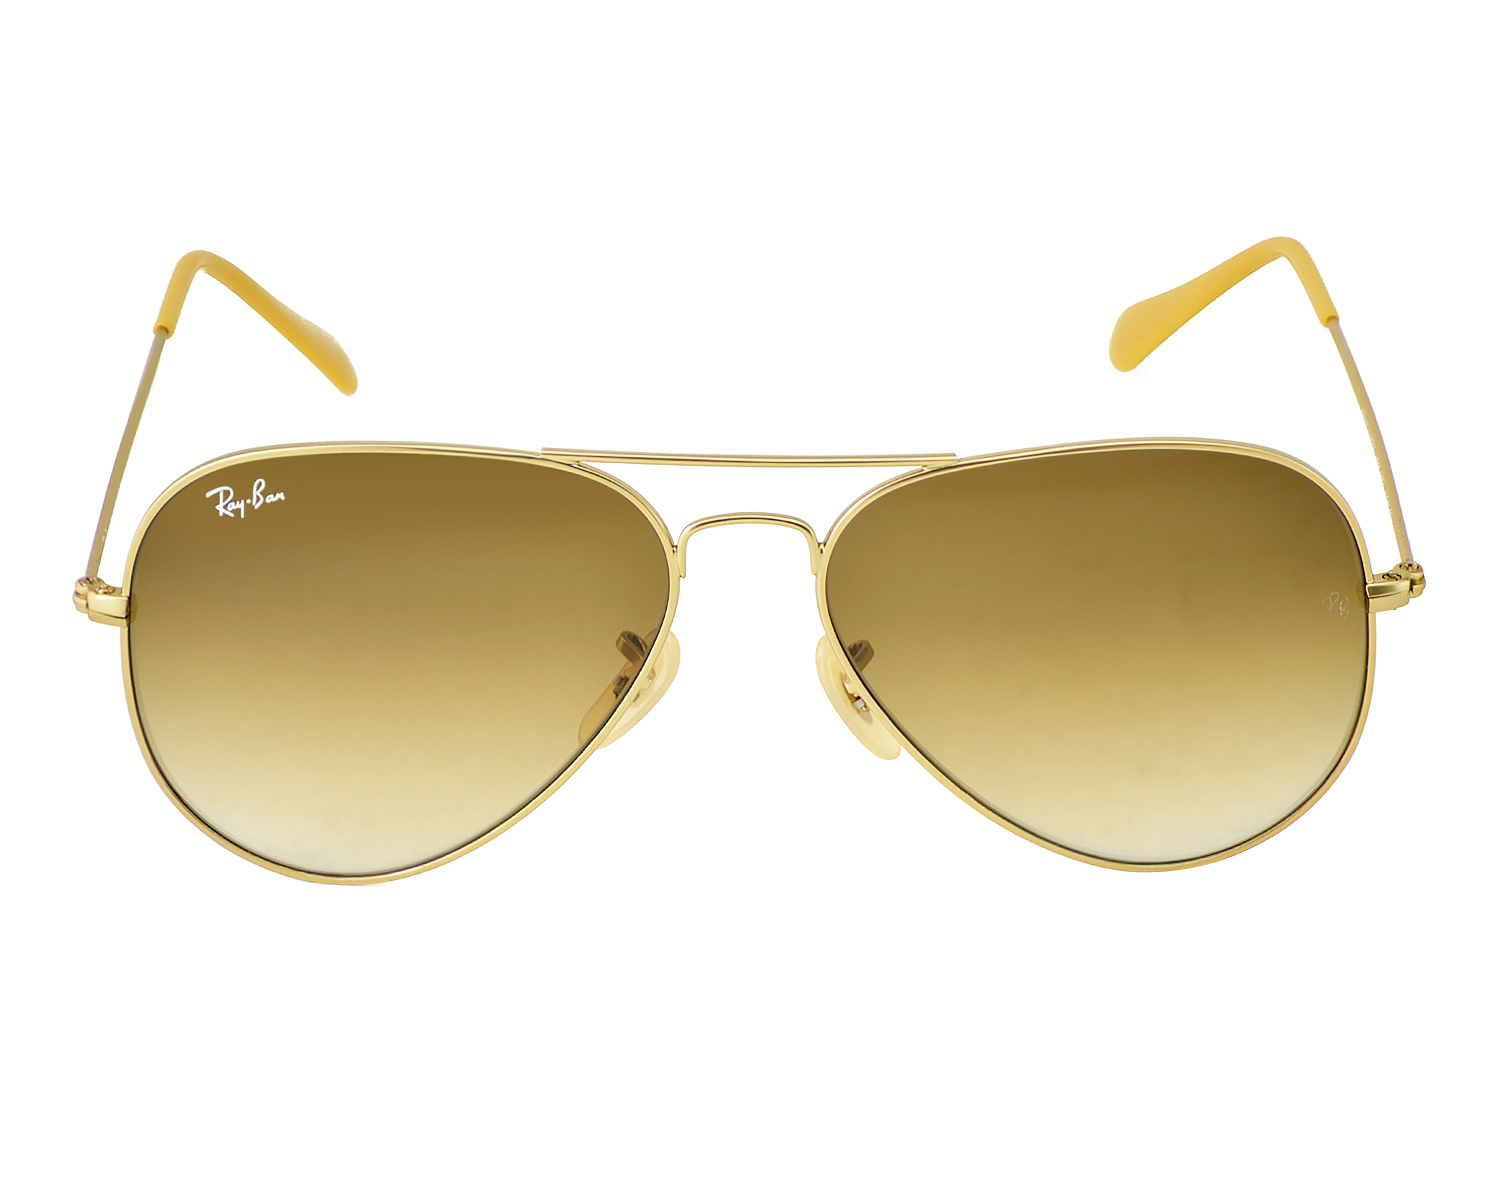 4ec870bf29 Ray-Ban RB3025 Aviator Gradient 112 85 Gold Frame Brown Gradient Lenses  Unisex Sunglasses 58mm